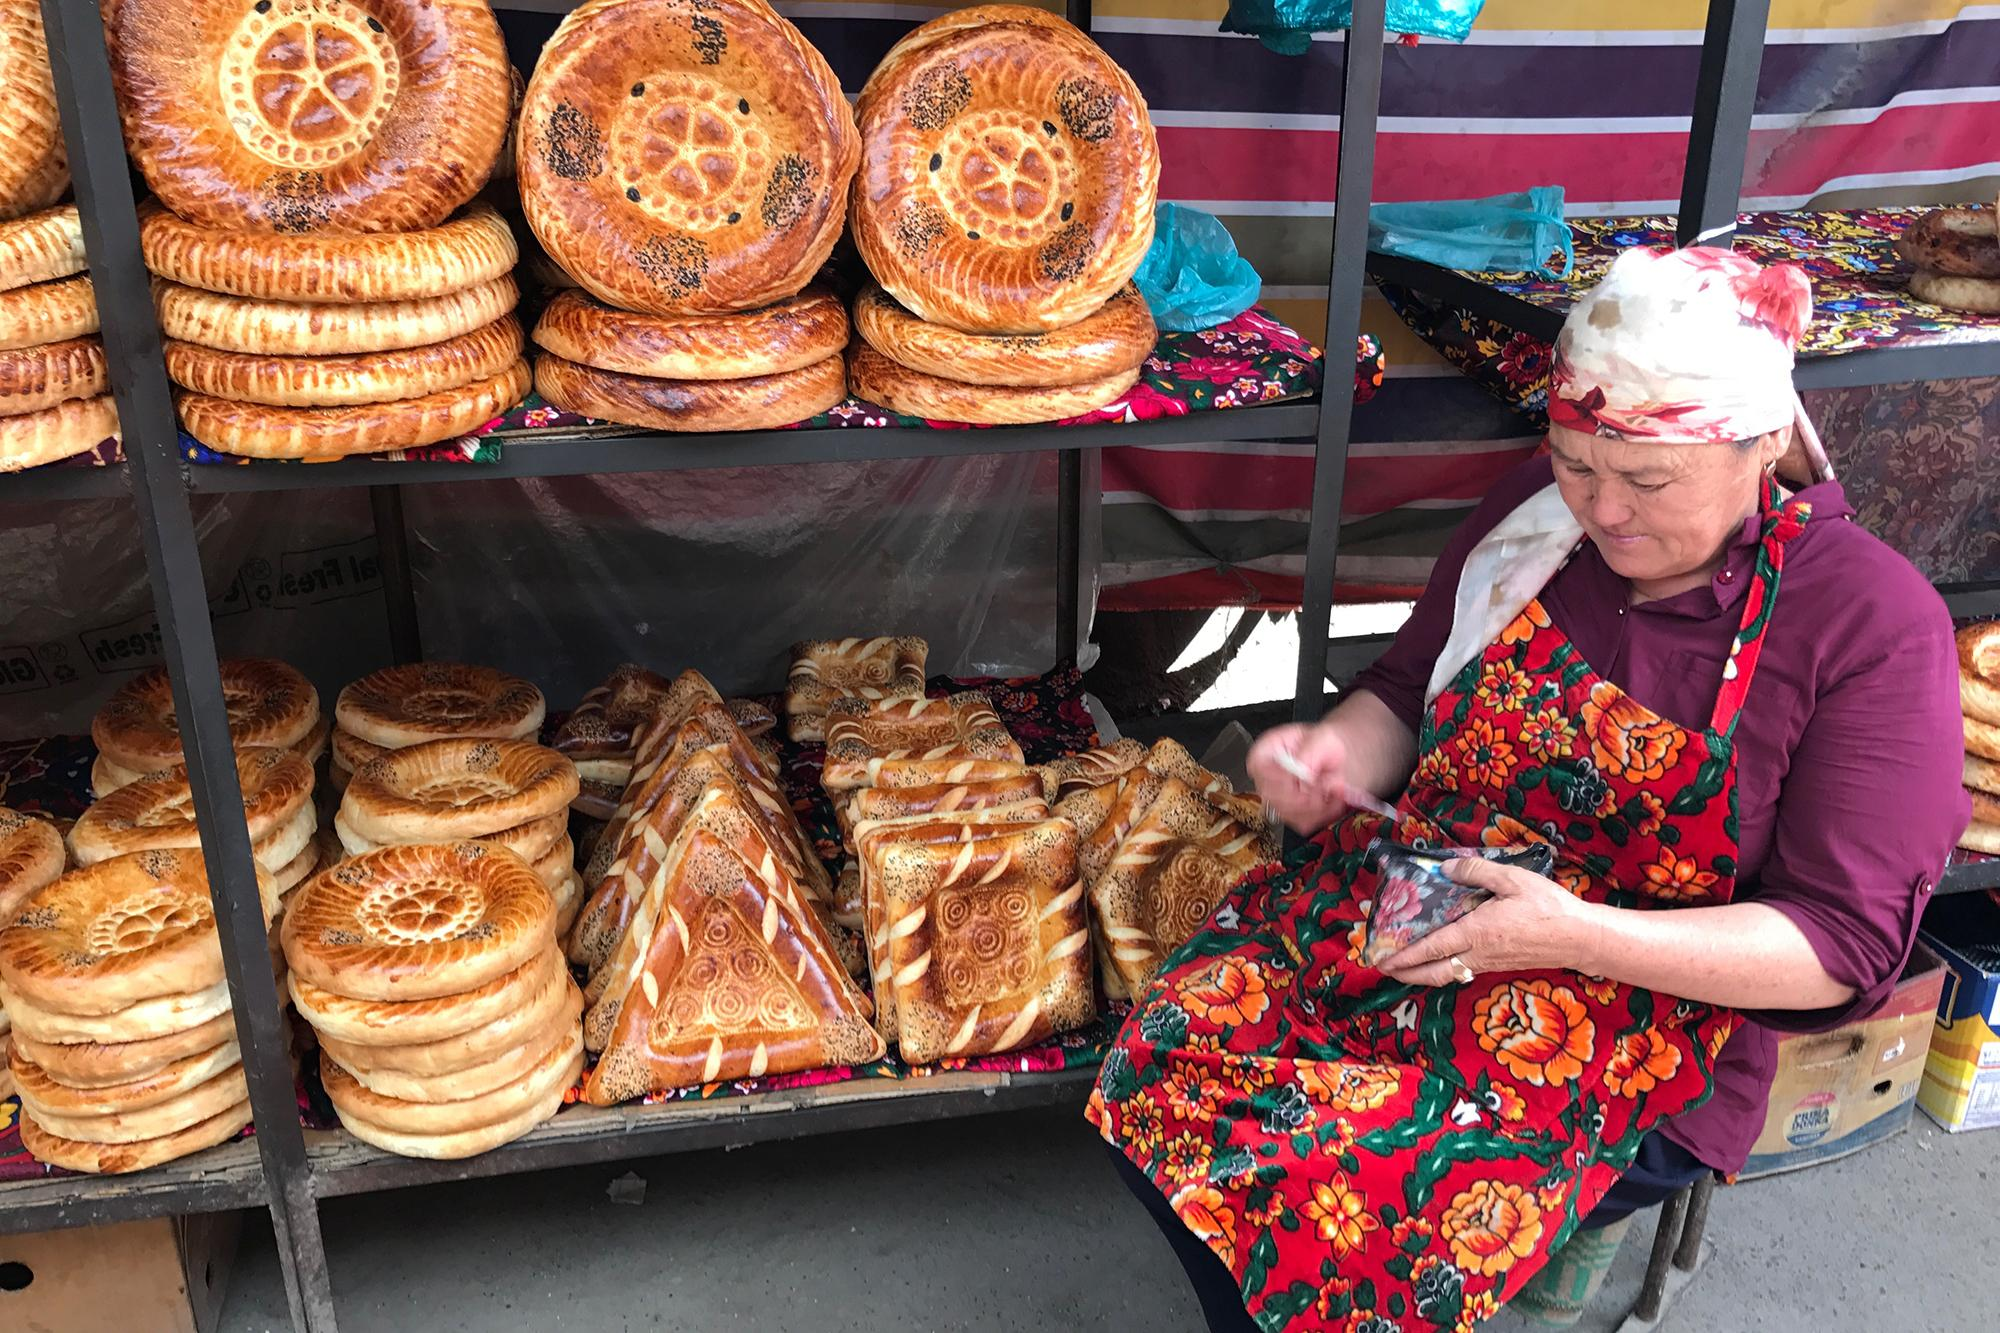 Called 'non' or 'nan,' the traditional bread in Central Asia is decorated with a bread stamp called a 'chekich.' The bread is then cooked in an oven called 'tandyr' (similar concept to a tandoor oven), slapping the dough directly onto the oven walls.